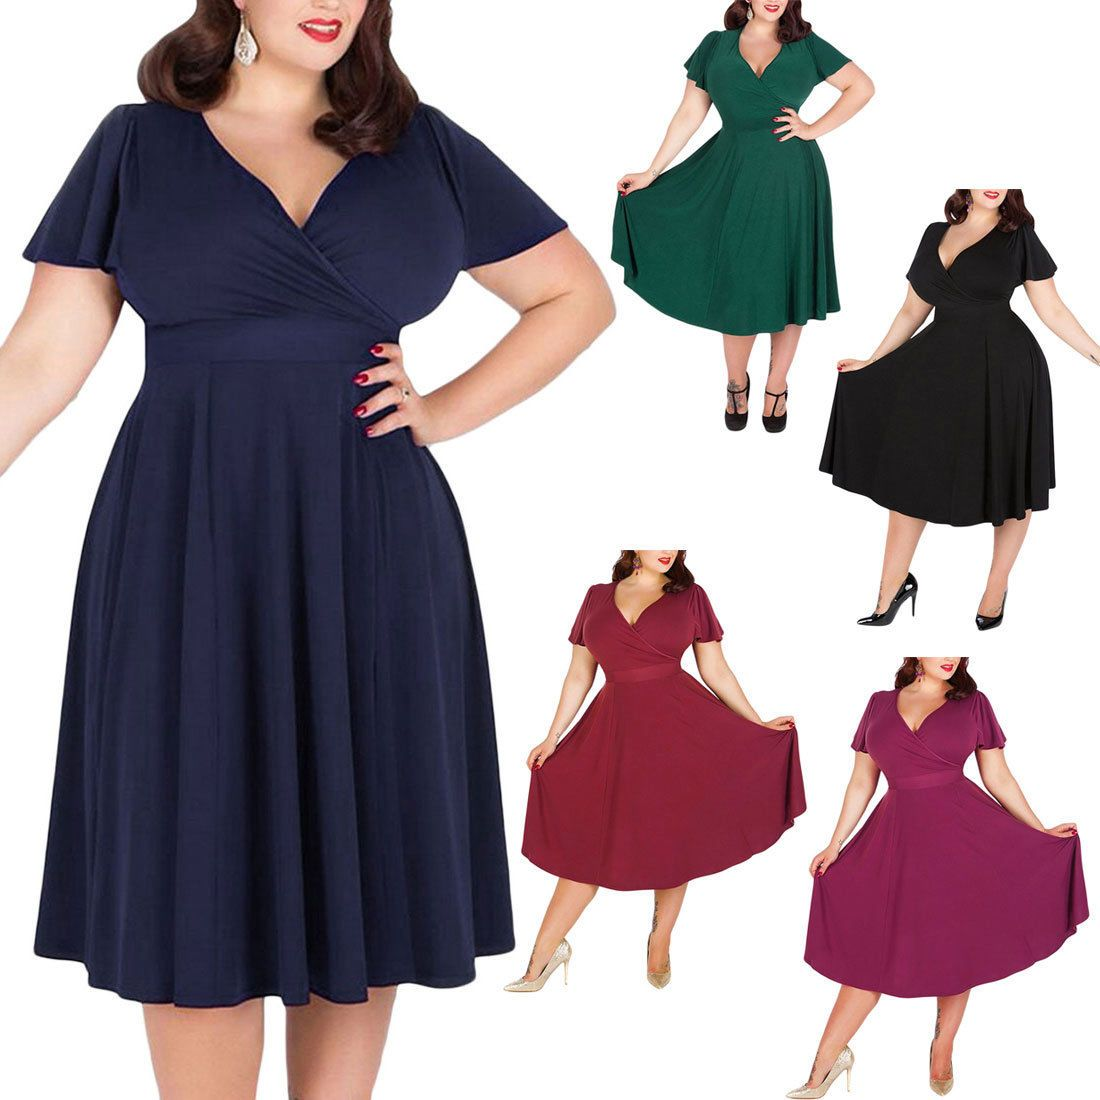 Women solid short sleeve vneck stretchy casual midi plus size